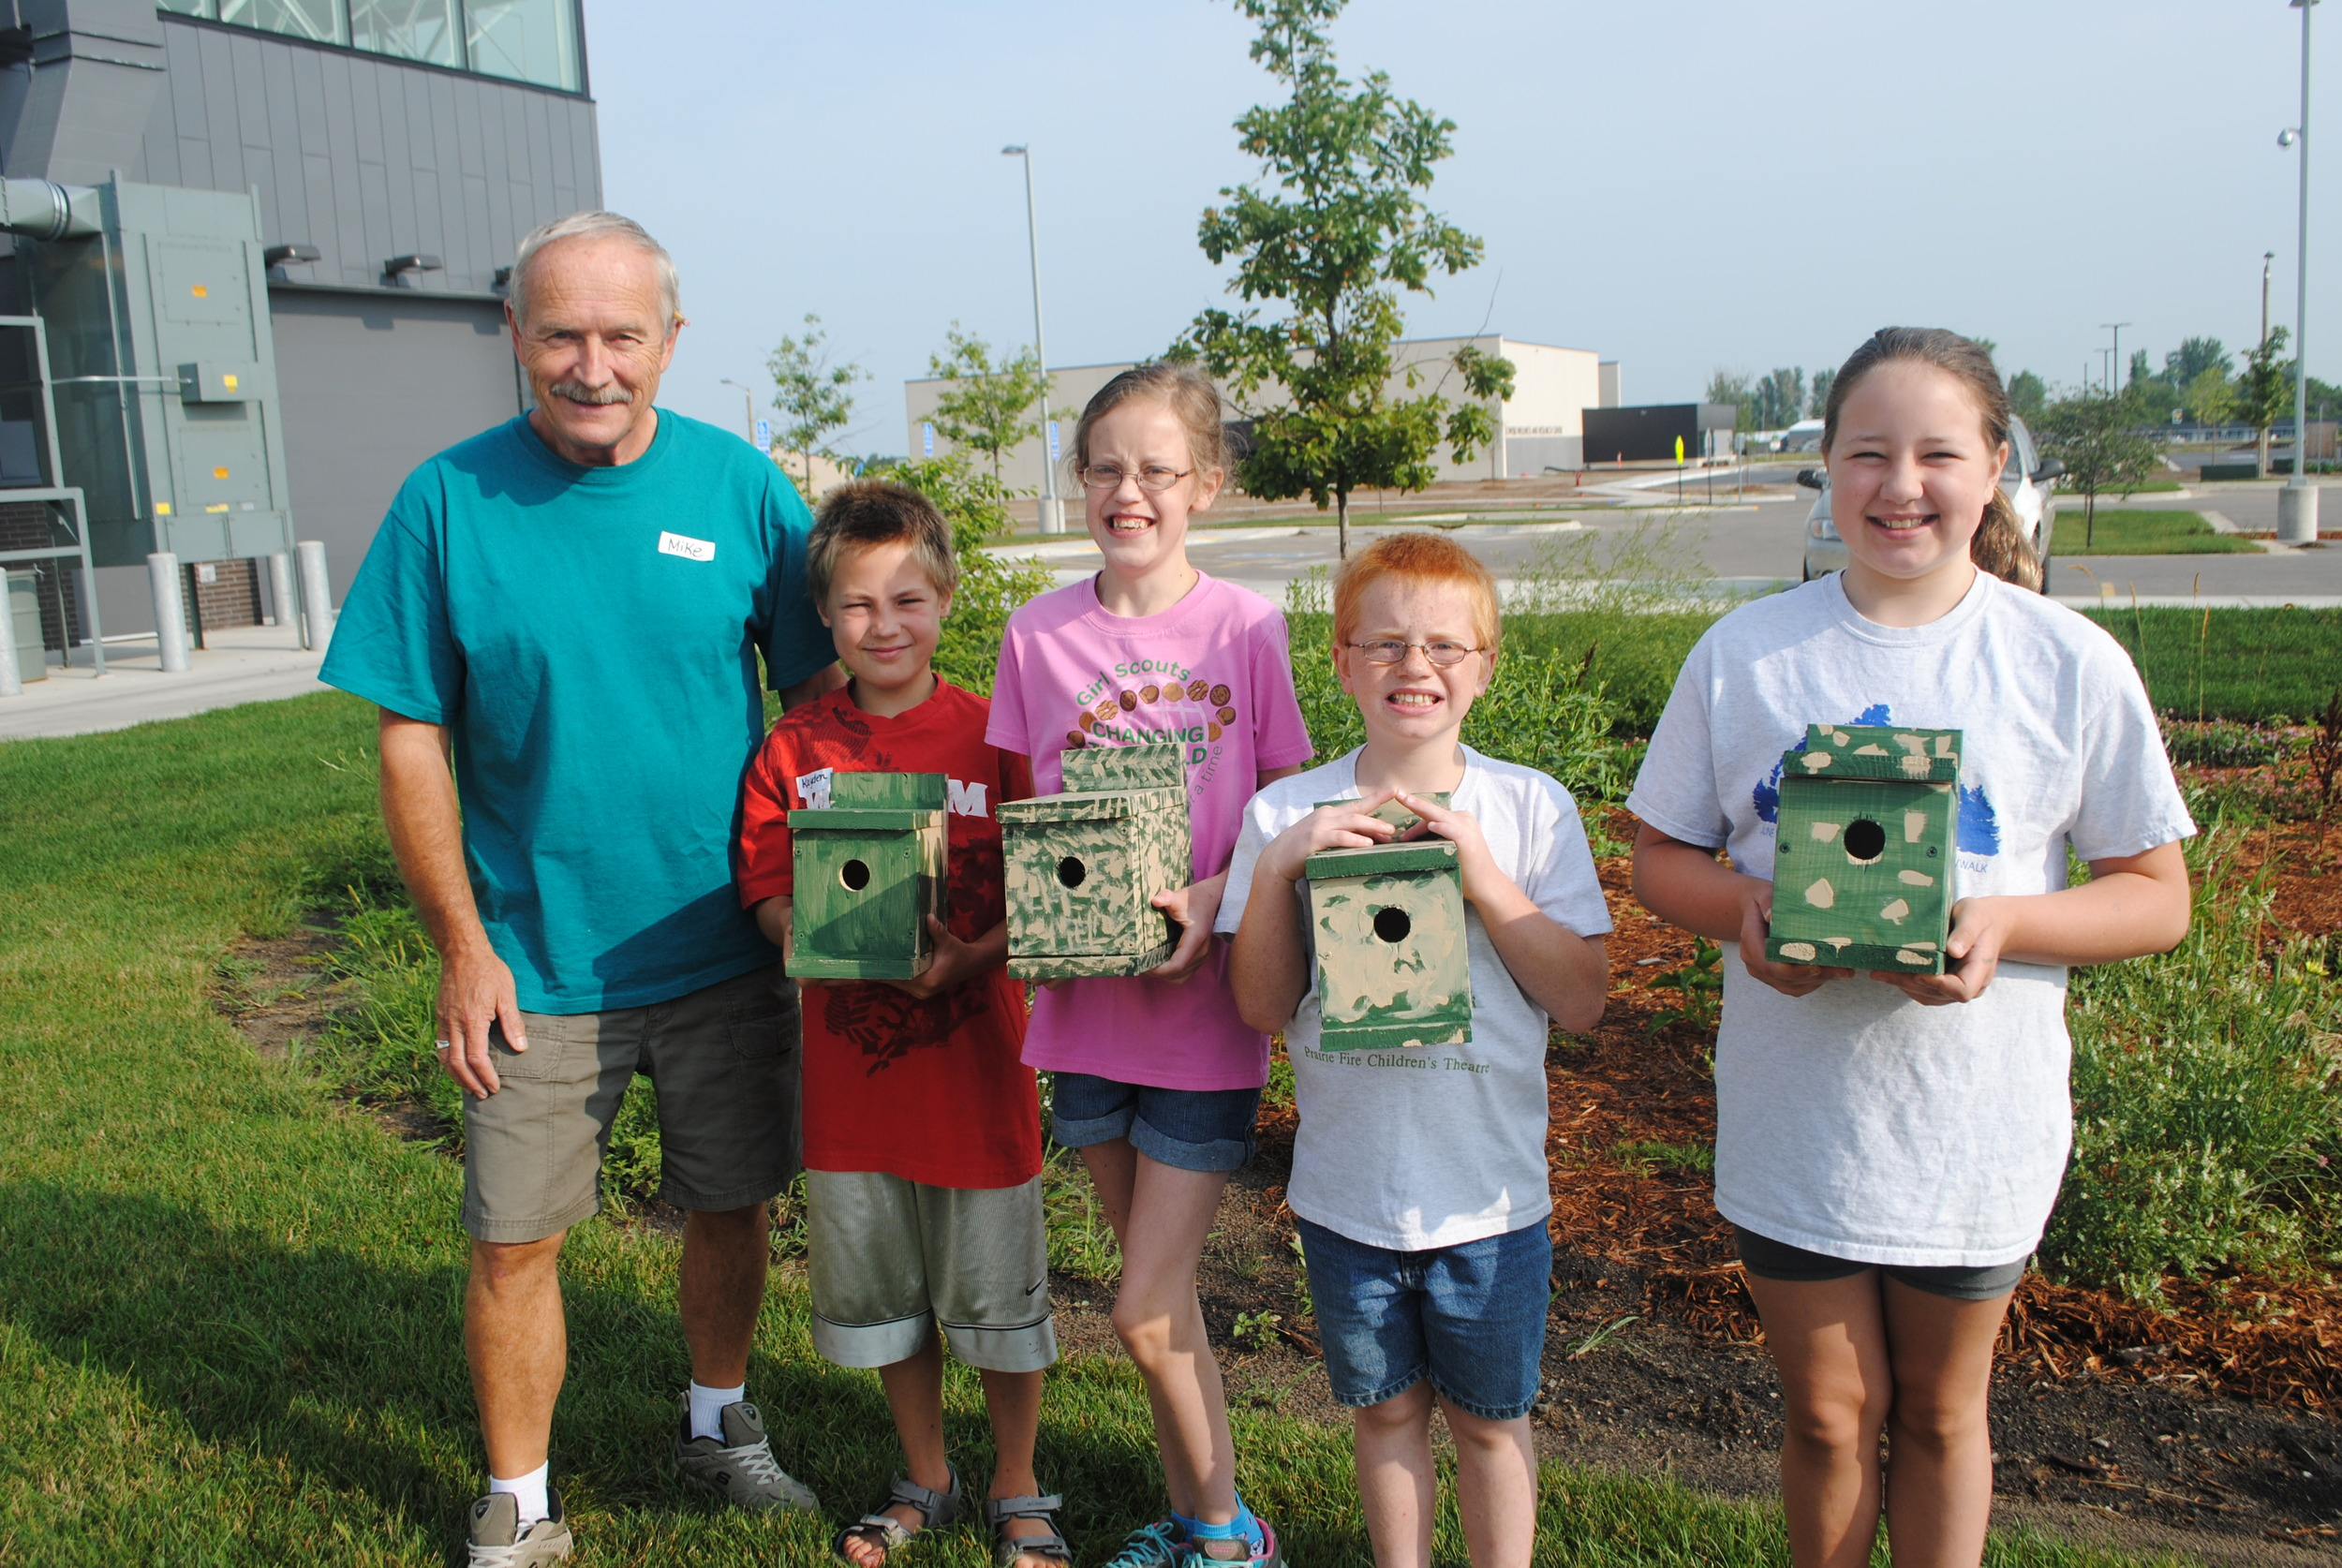 Youth proudly hold their wren houses they built and painted in the WDCB Community Education enrichment class on Aug. 5 and 6, from left: Instructor Mike Holzer, Kayden Stinar, Alyssa Heltemes, Ron Bernu and Kaylin Lupkes. The kids also built a bluebird house. (Photos by Dana Pavek, WDC Schools)